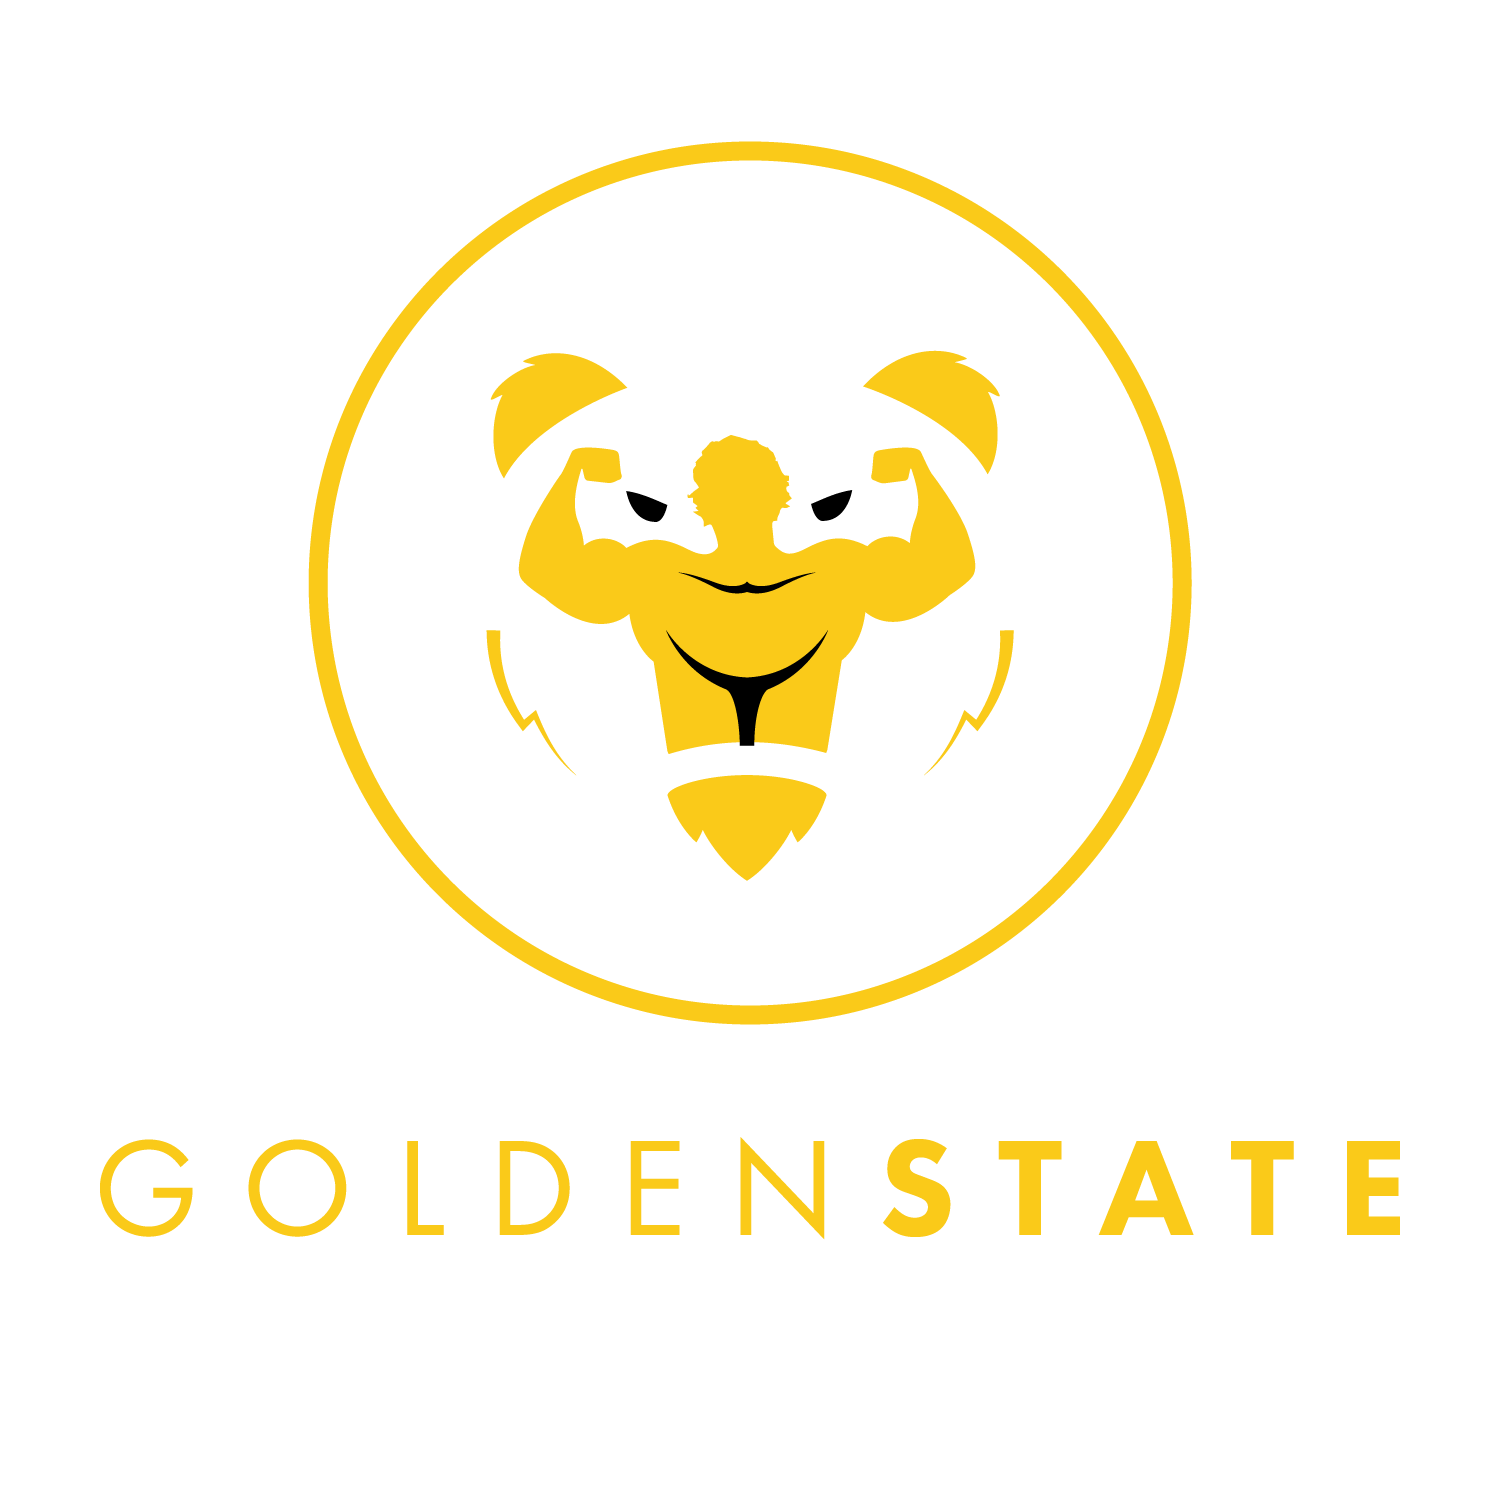 GSFP Personal Trainers -  East Bay Area: Oakland, Piedmont Montclair CA